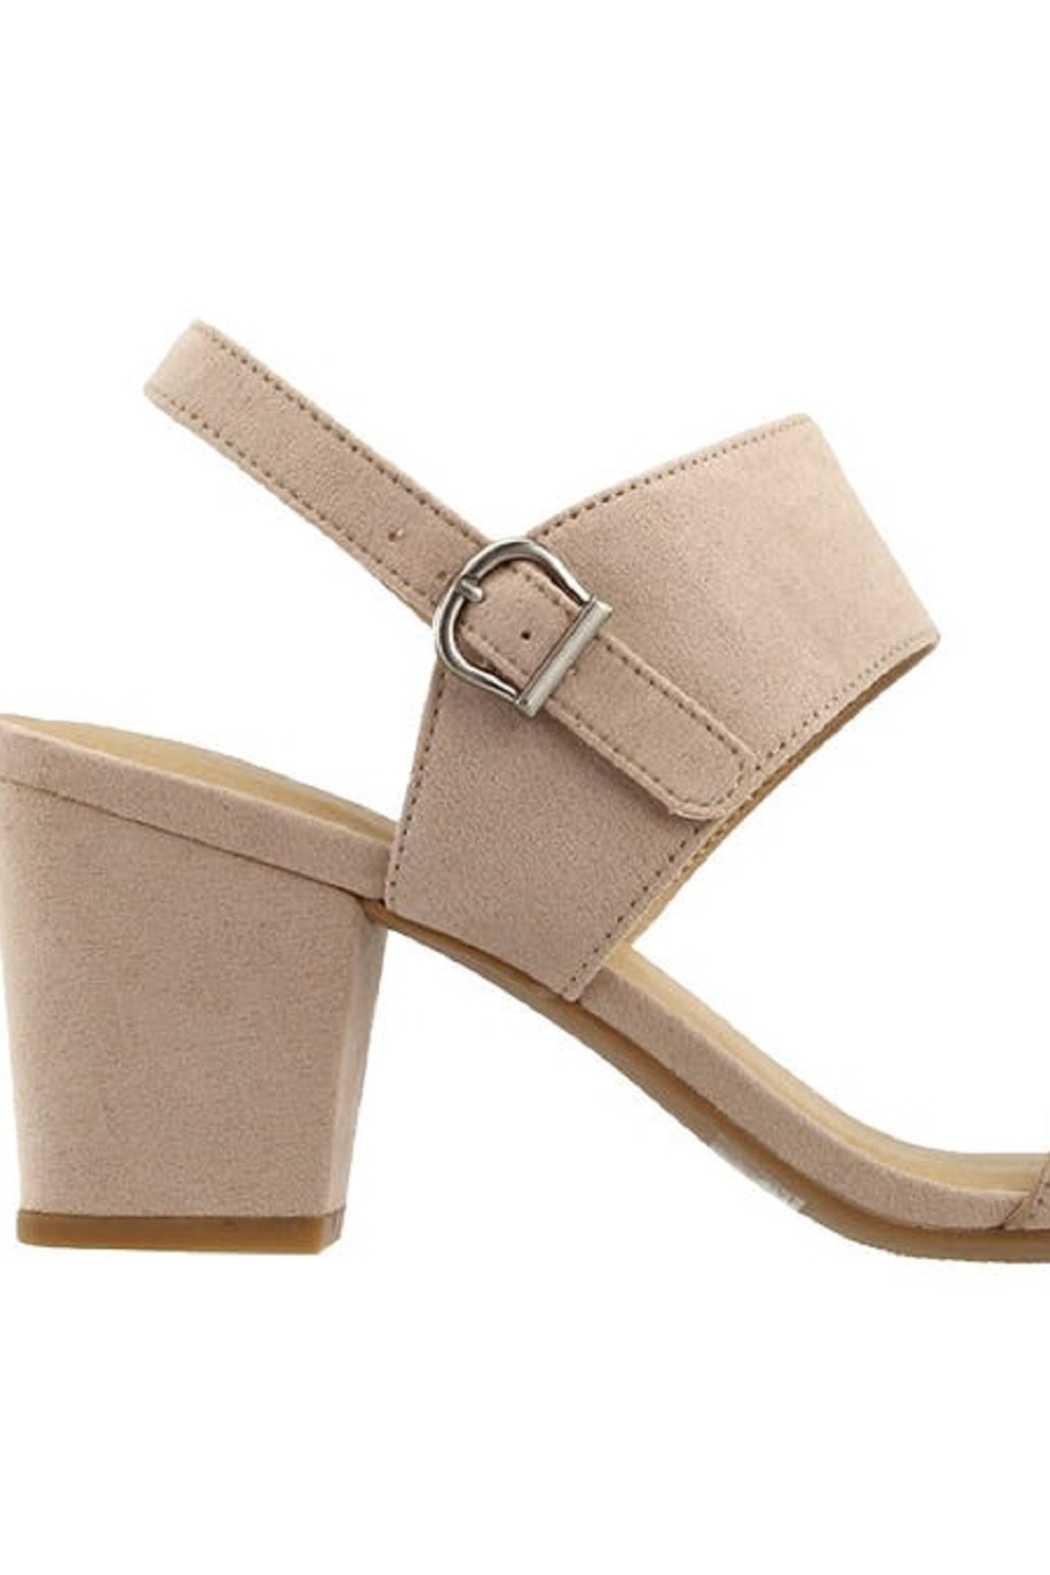 Chinese Laundry Spot On Nude Suede Heel - Front Full Image